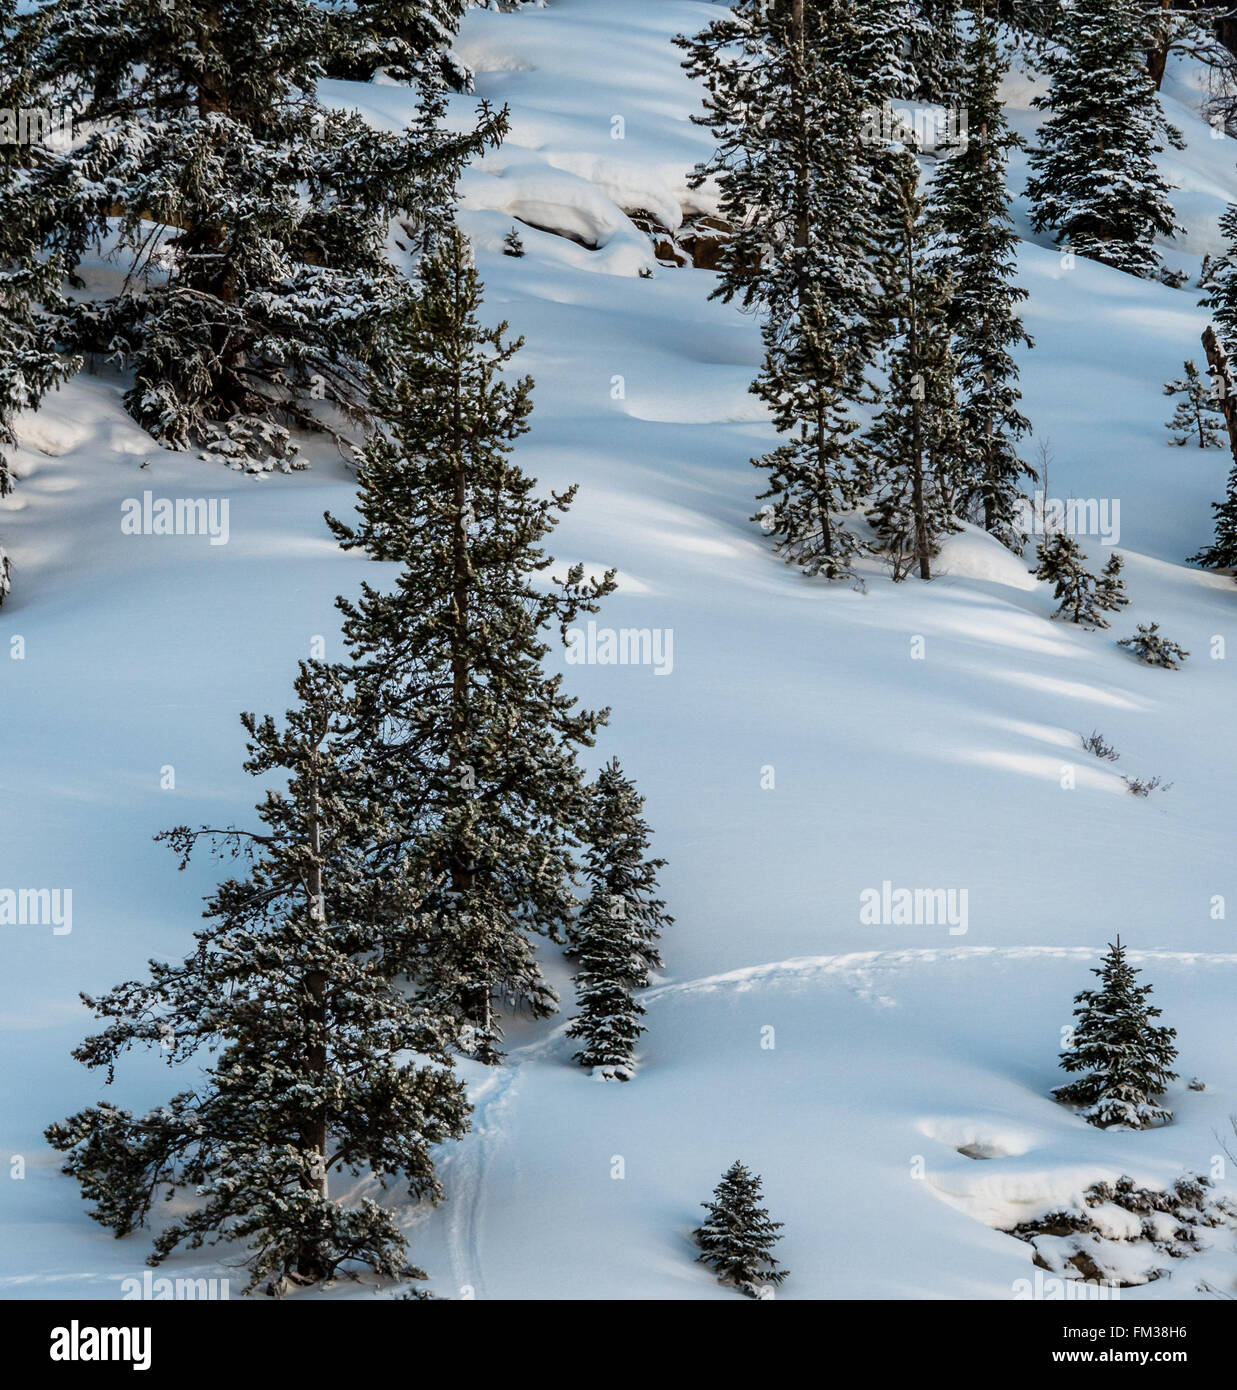 Animal tracks through fresh snow on hill side - Stock Image